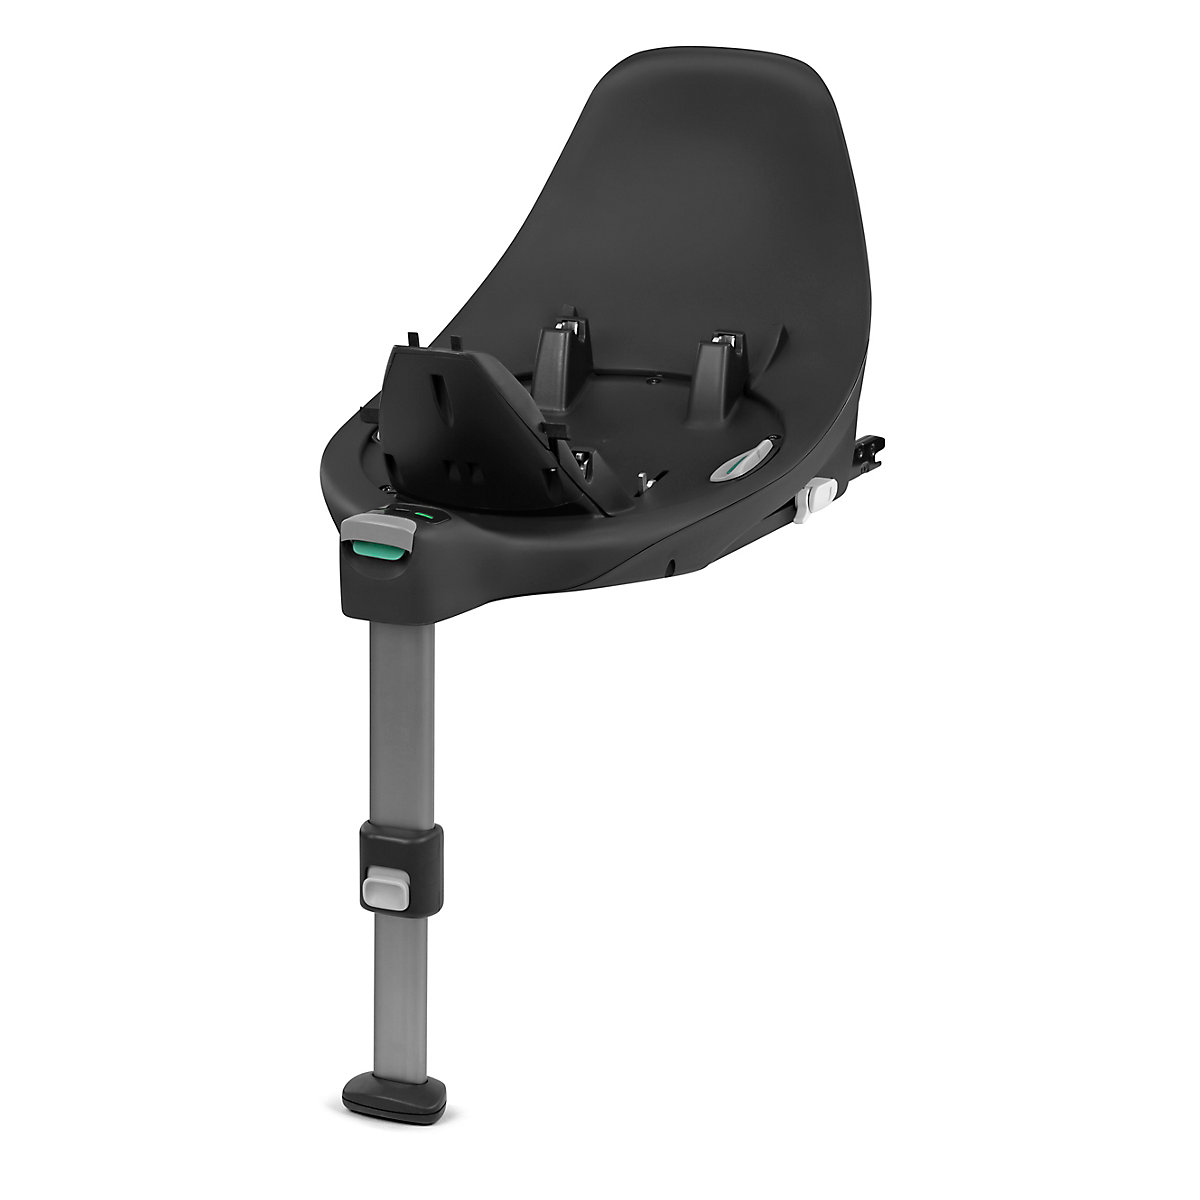 Cybex base z modular rotating car seat base